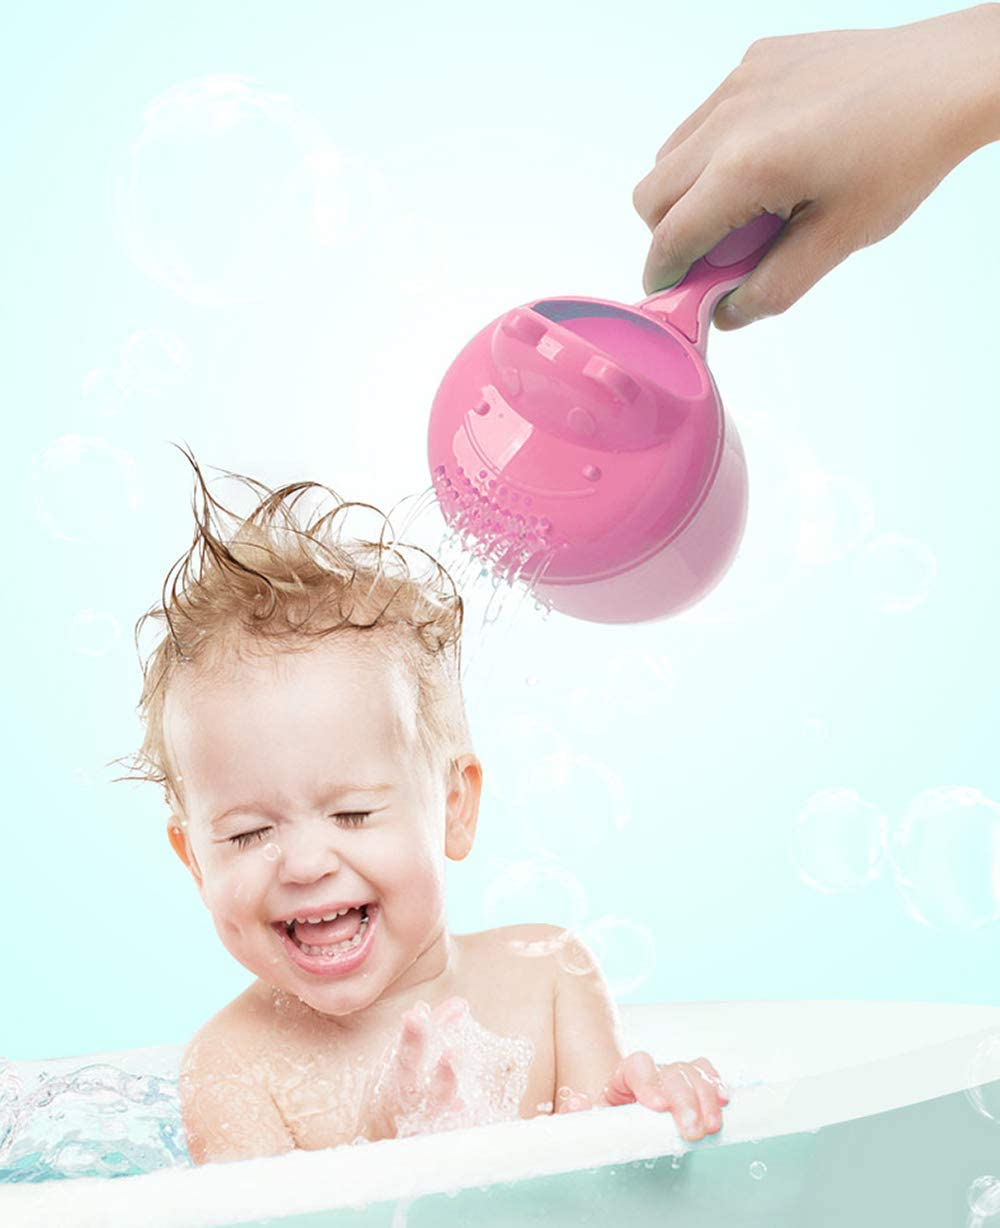 Rinse Shampoo Rinser Baby Rinse Cup Baby Bath Rinser Wash Hair Cup by Protecting Infant Eyes (Pink)